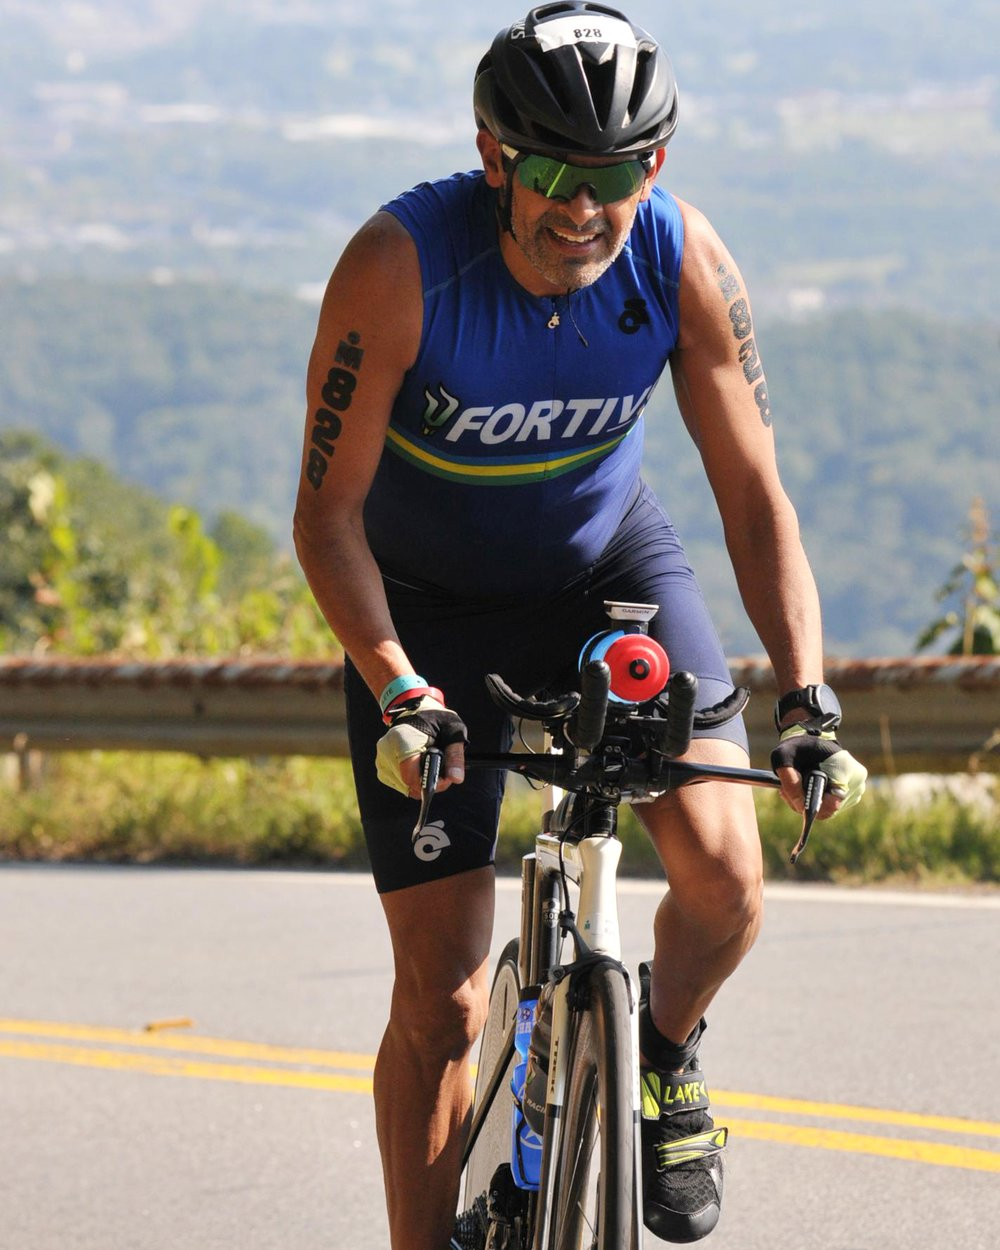 Fortius Coach Gerardo earned his 3rd trip the the 70.3. World Championship.